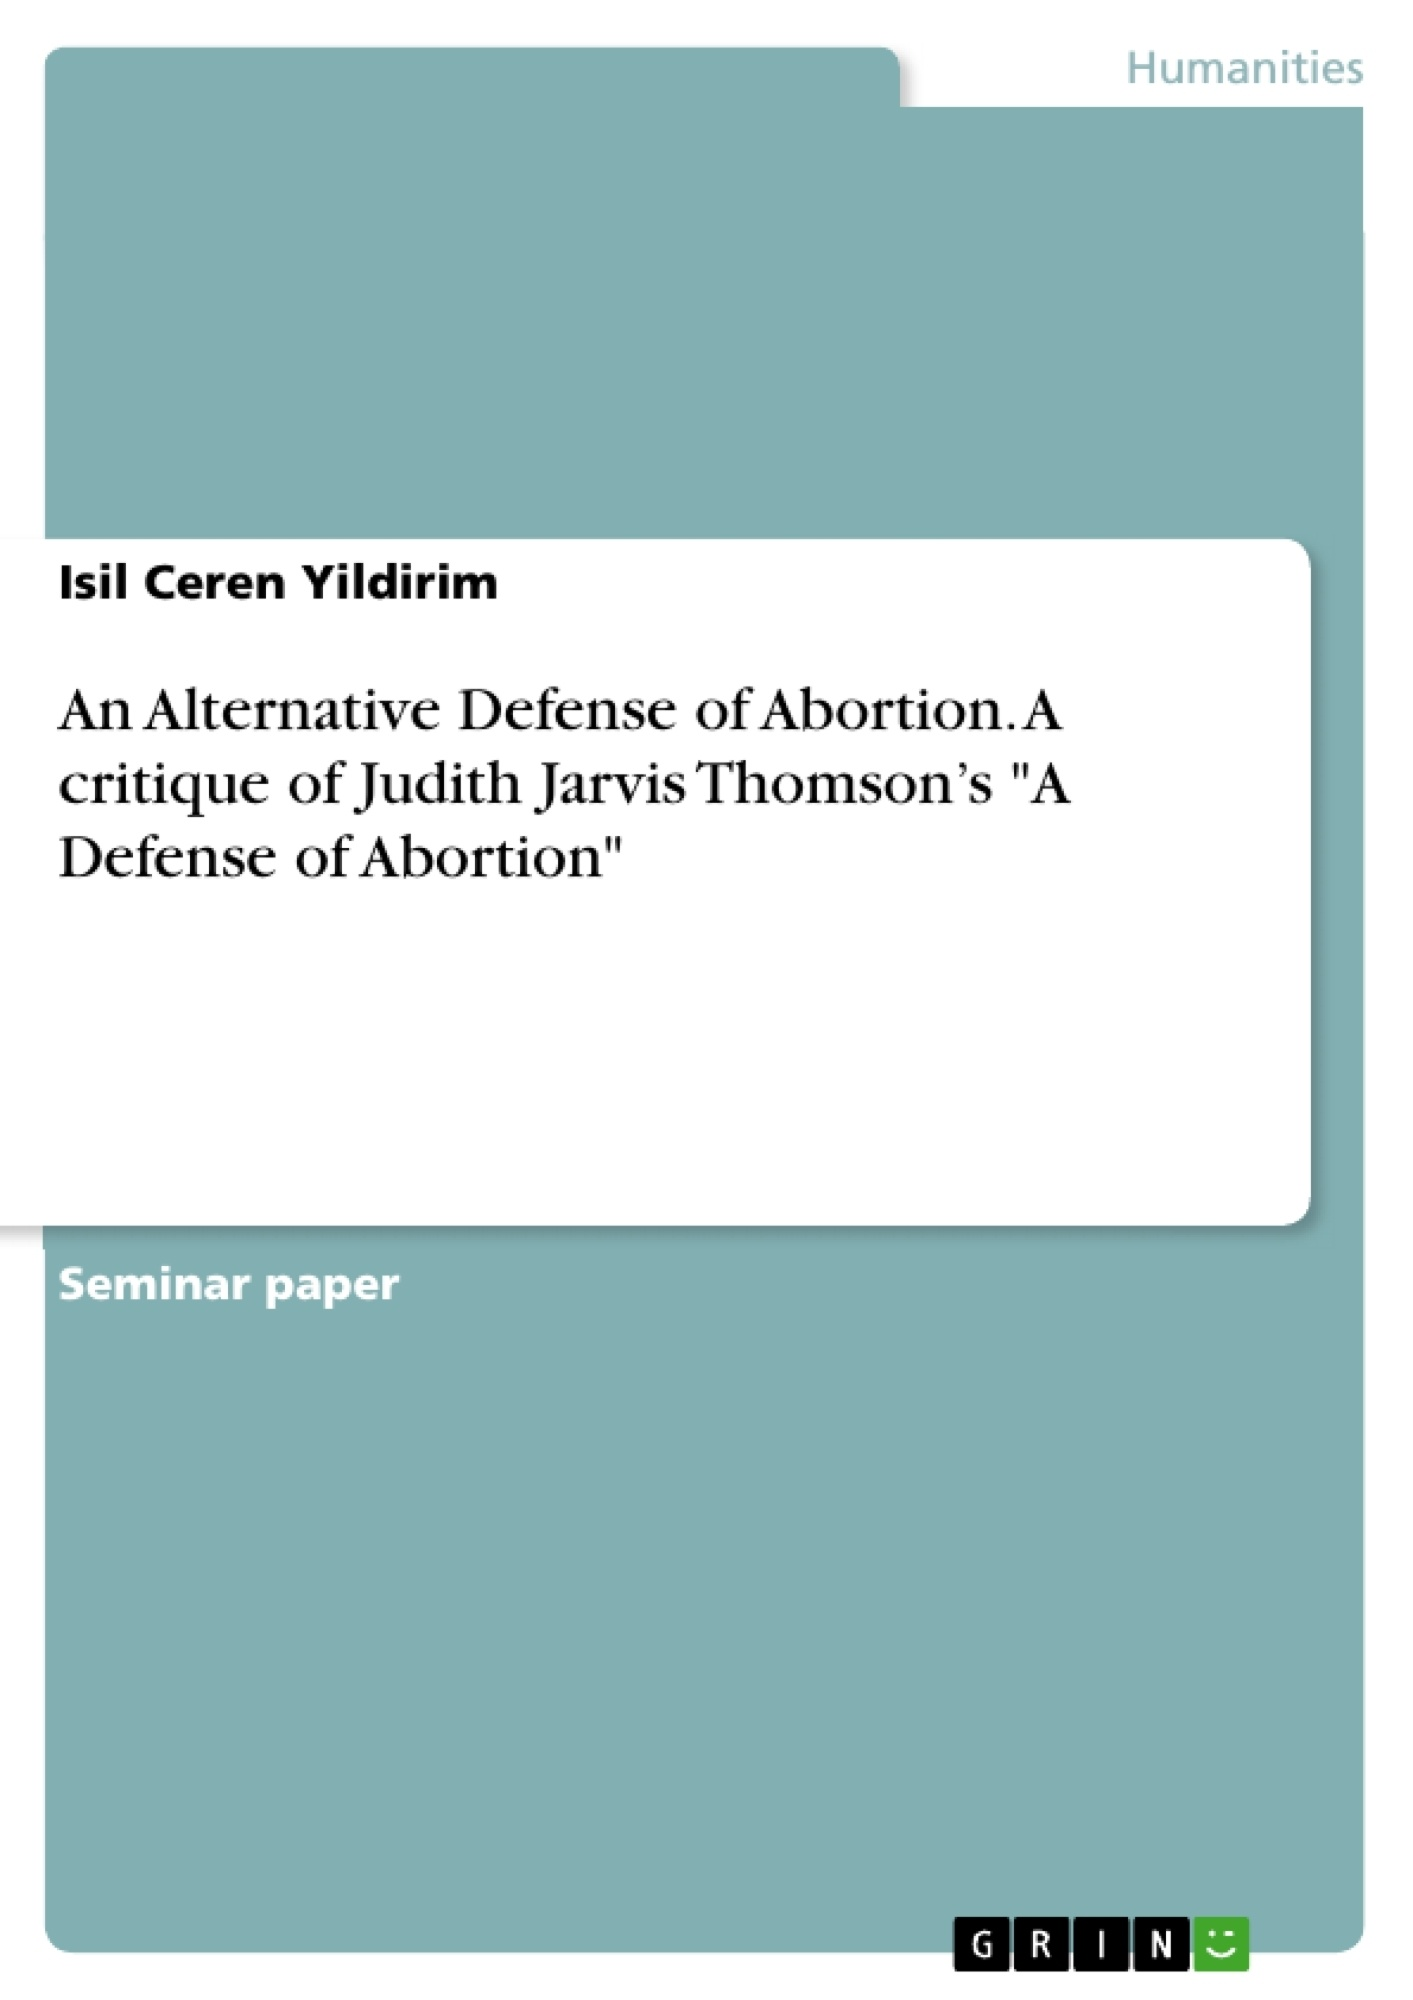 """Title: An Alternative Defense of Abortion. A critique of Judith Jarvis Thomson's """"A Defense of Abortion"""""""